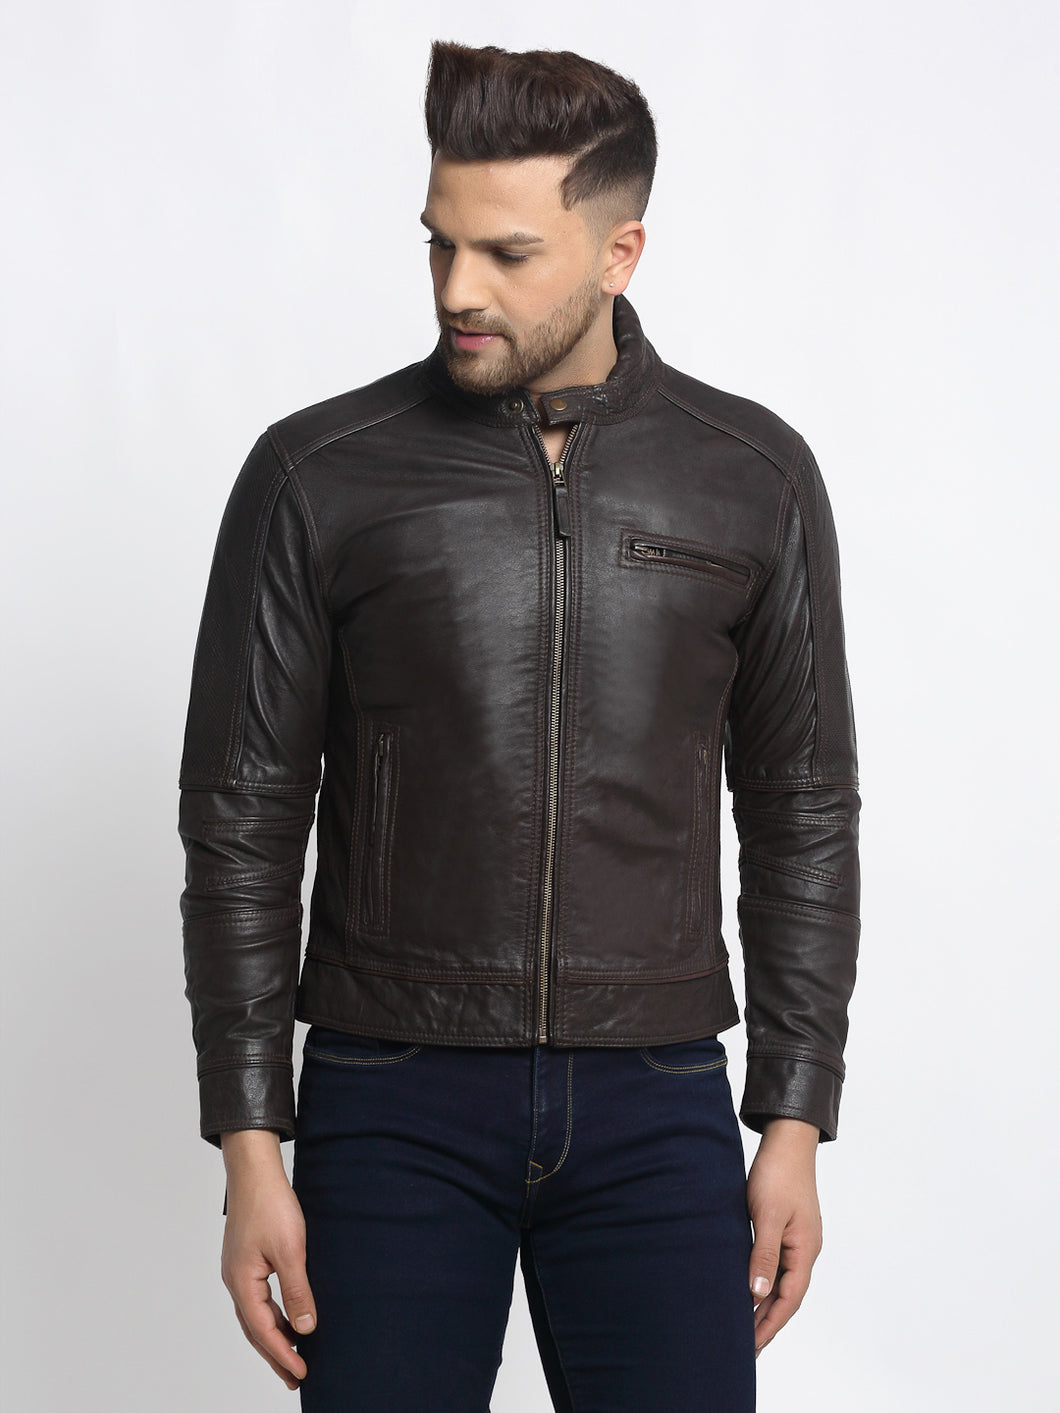 Teakwood Leathers Brown Genuine Leather Jacket